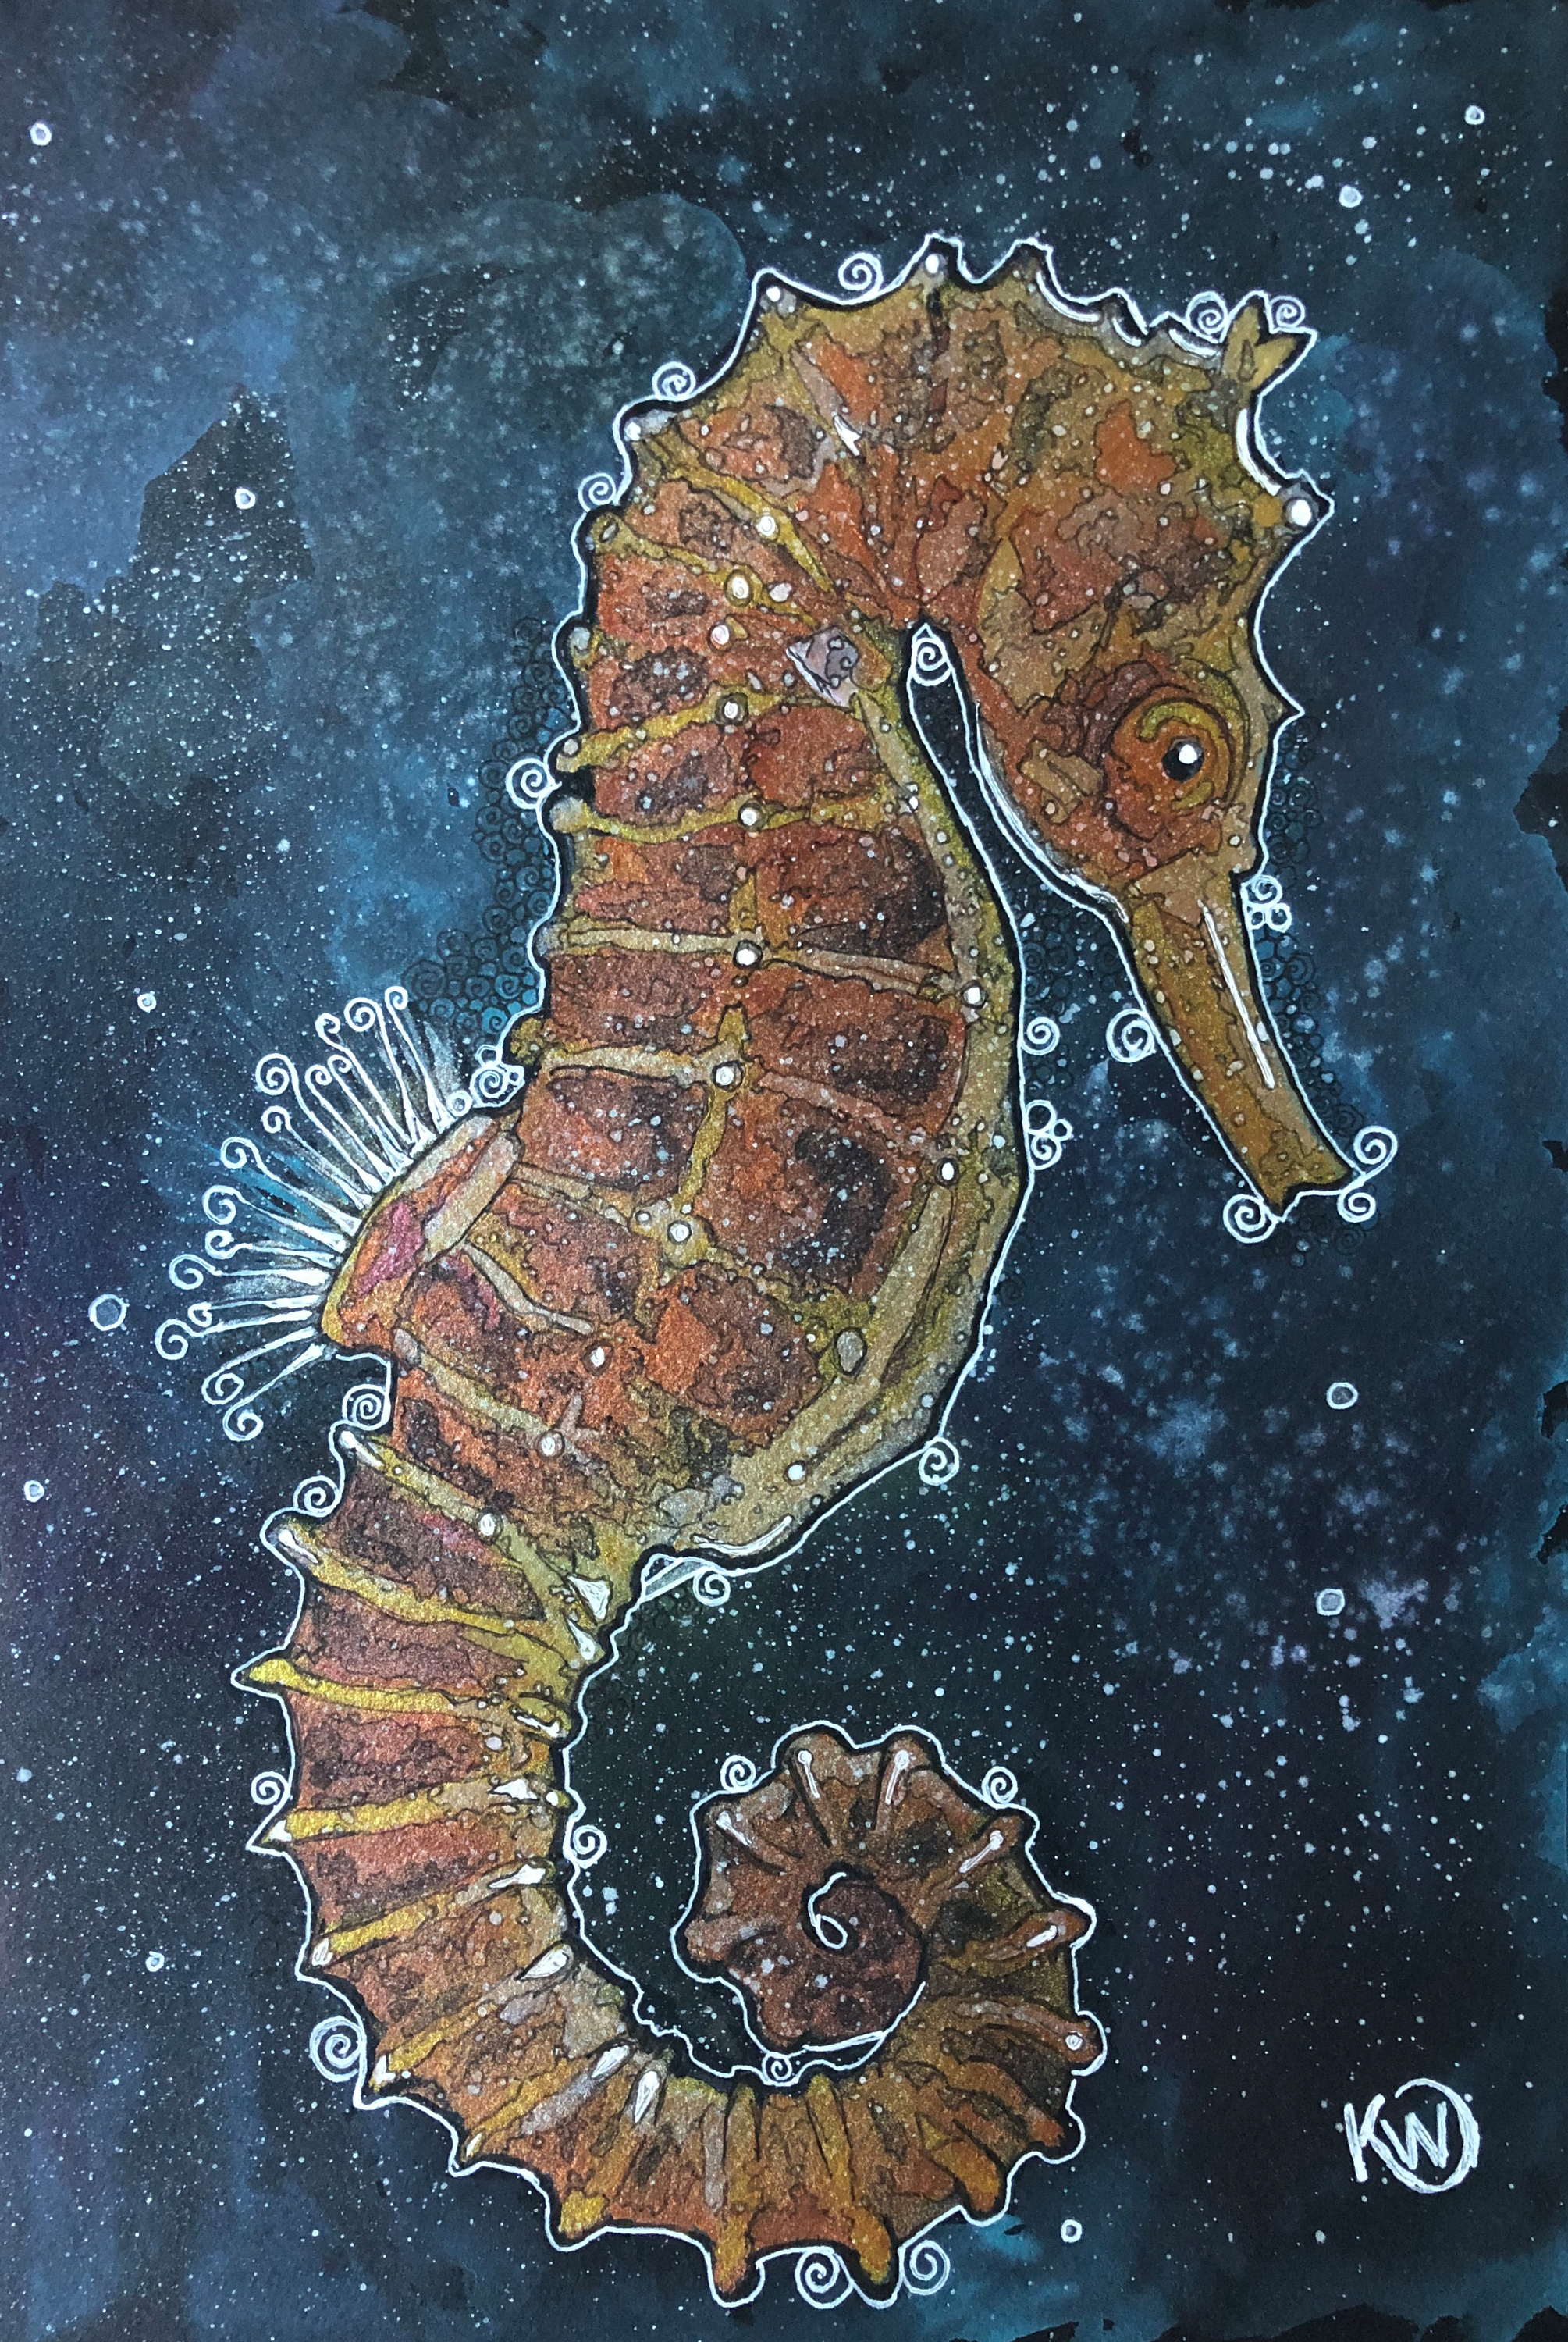 Copperseahorse maqgxd